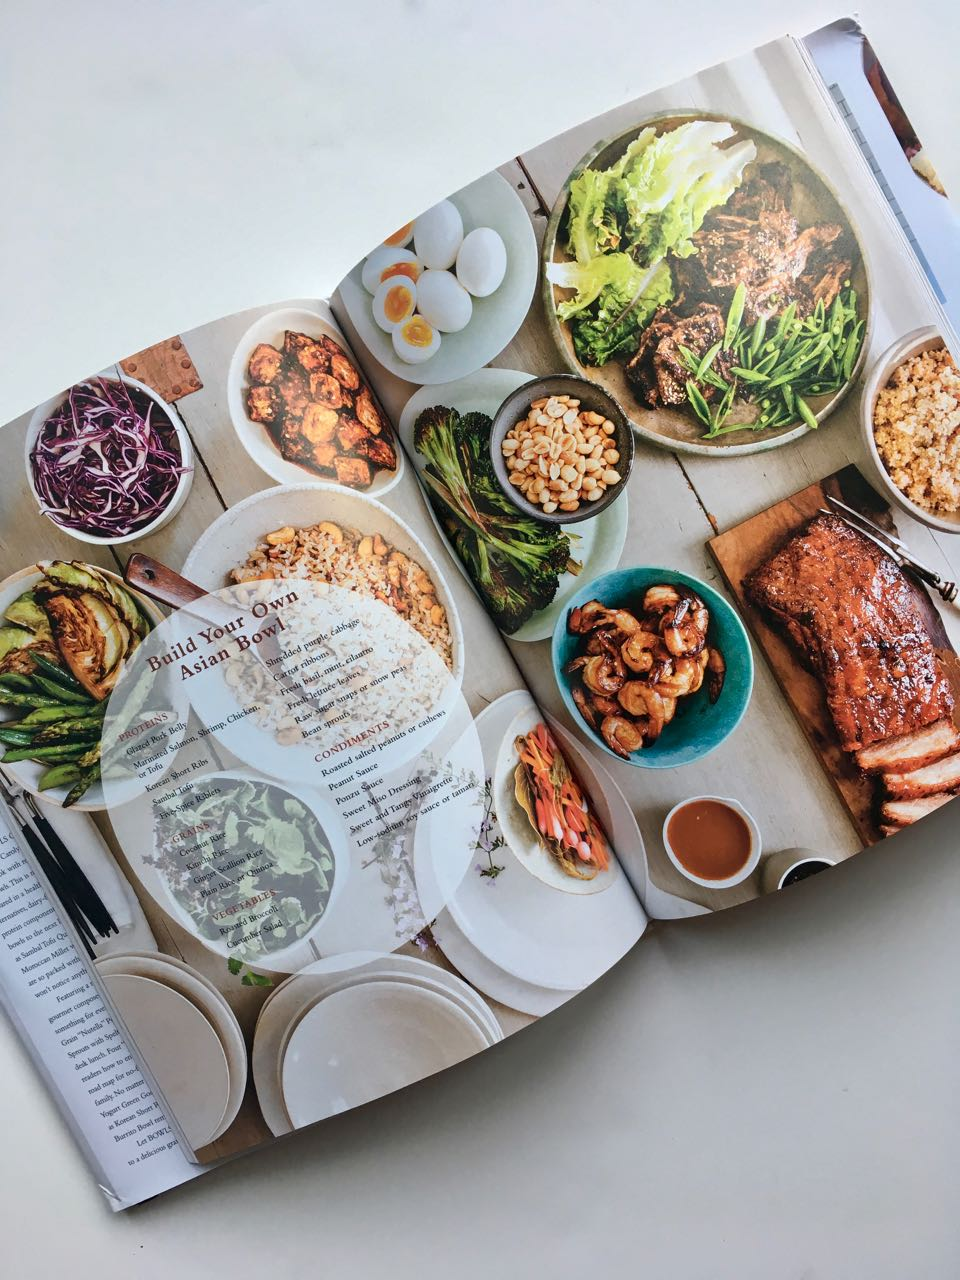 Building a nutritious bowl is what this book is all about! Read why I love this new cookbook by Carolynn Carreno! @cookinRD | sarahaasrdn.com